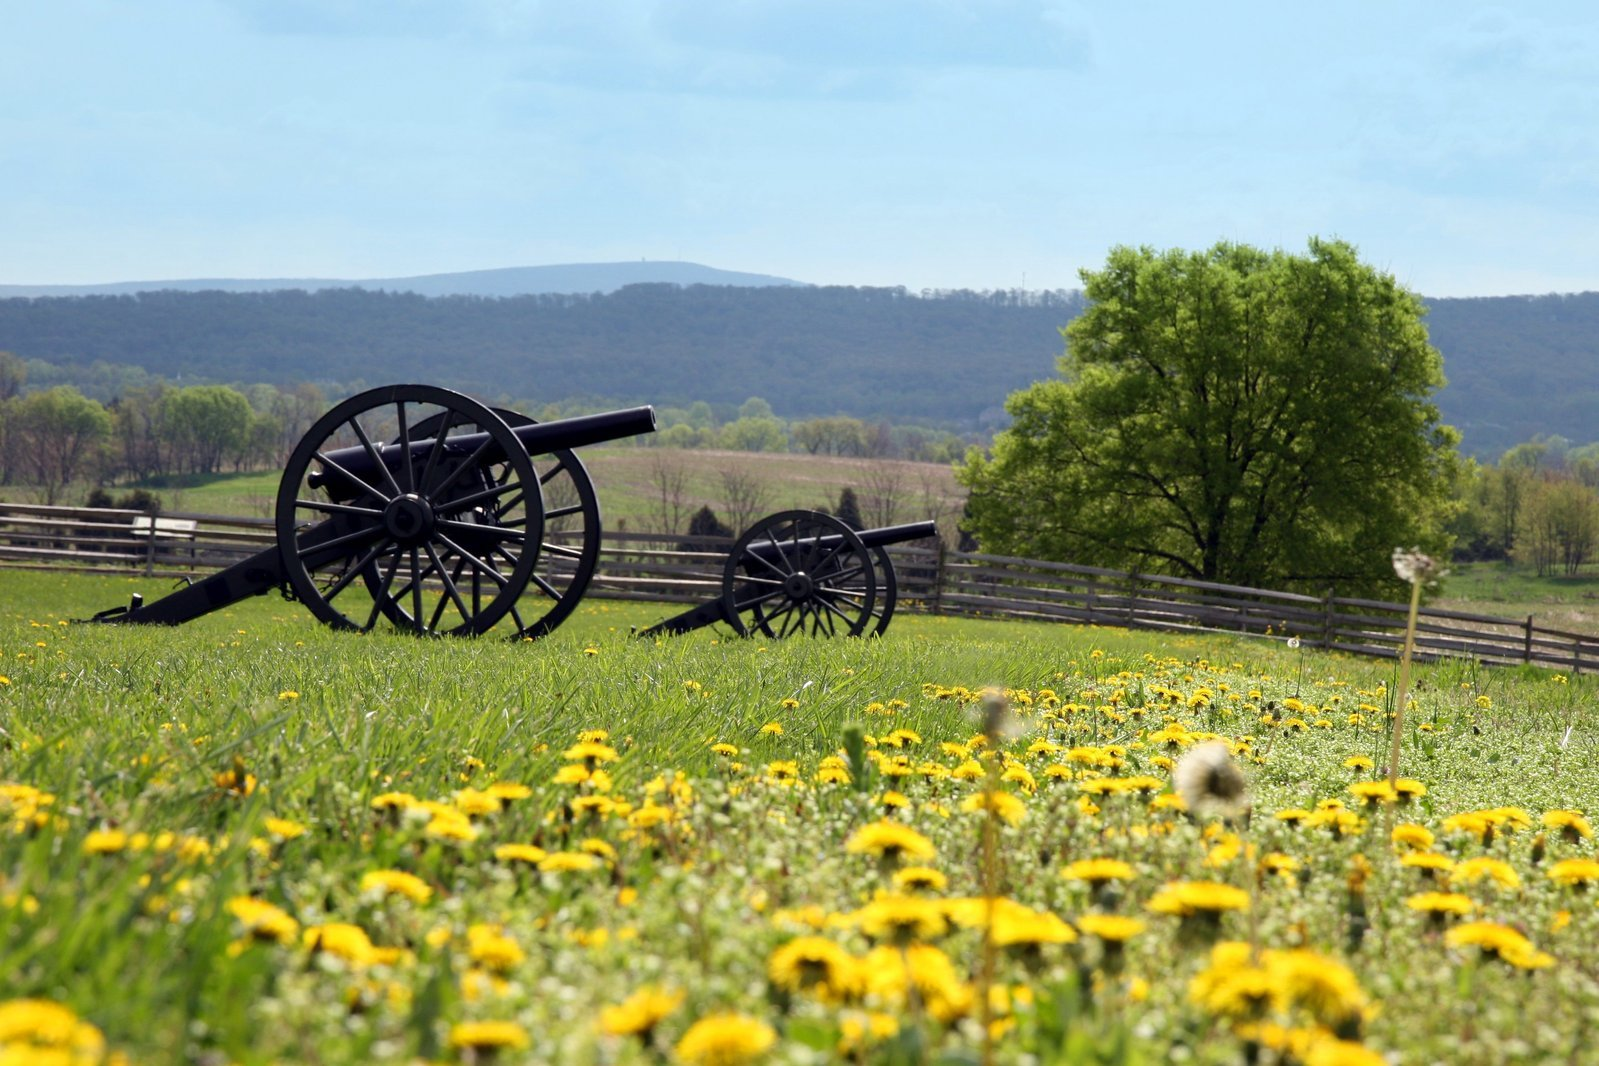 Cannon at Antietam 1